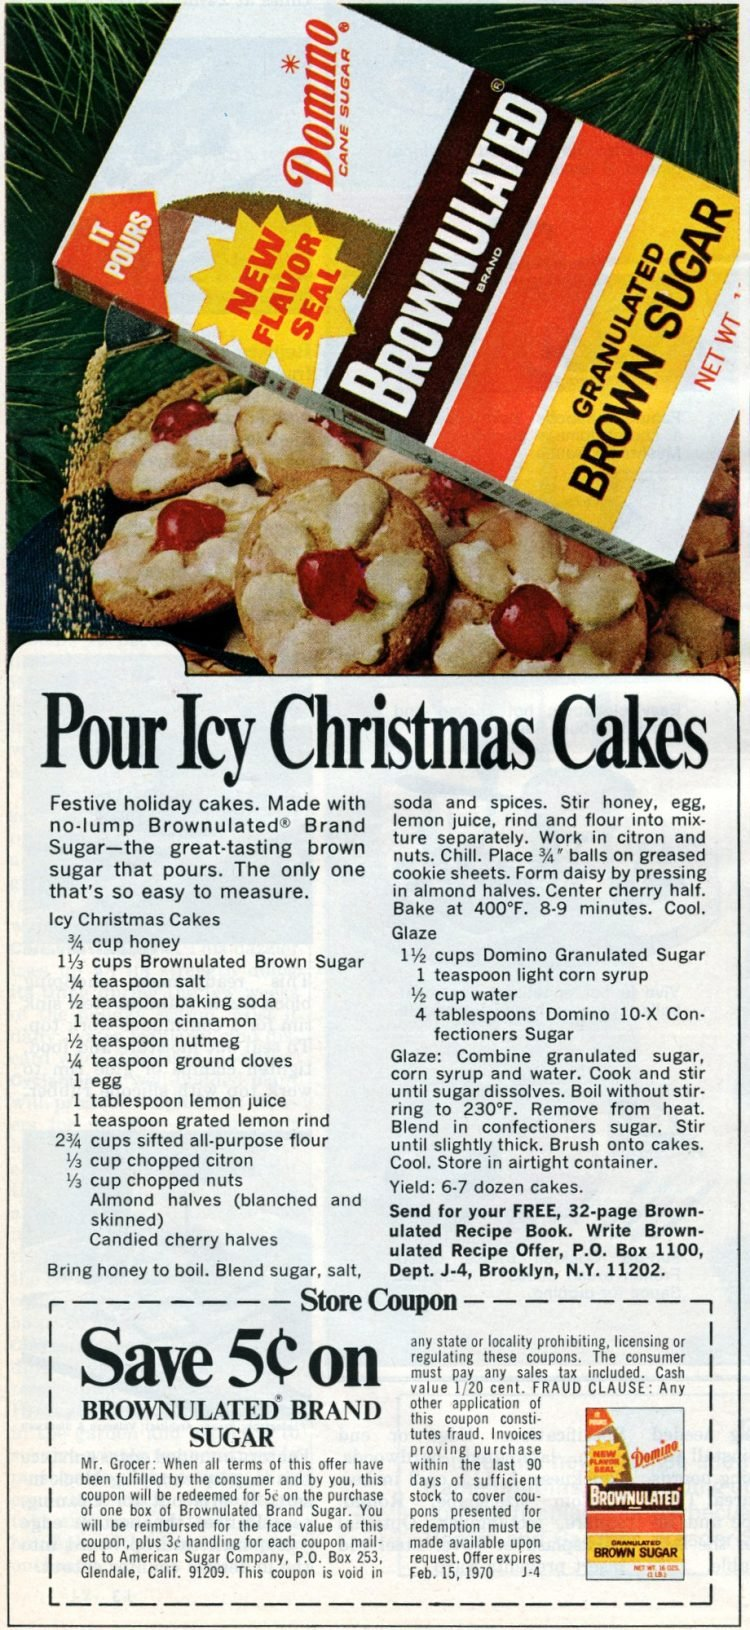 Icy Christmas cakes - Retro cookie recipe from 1969